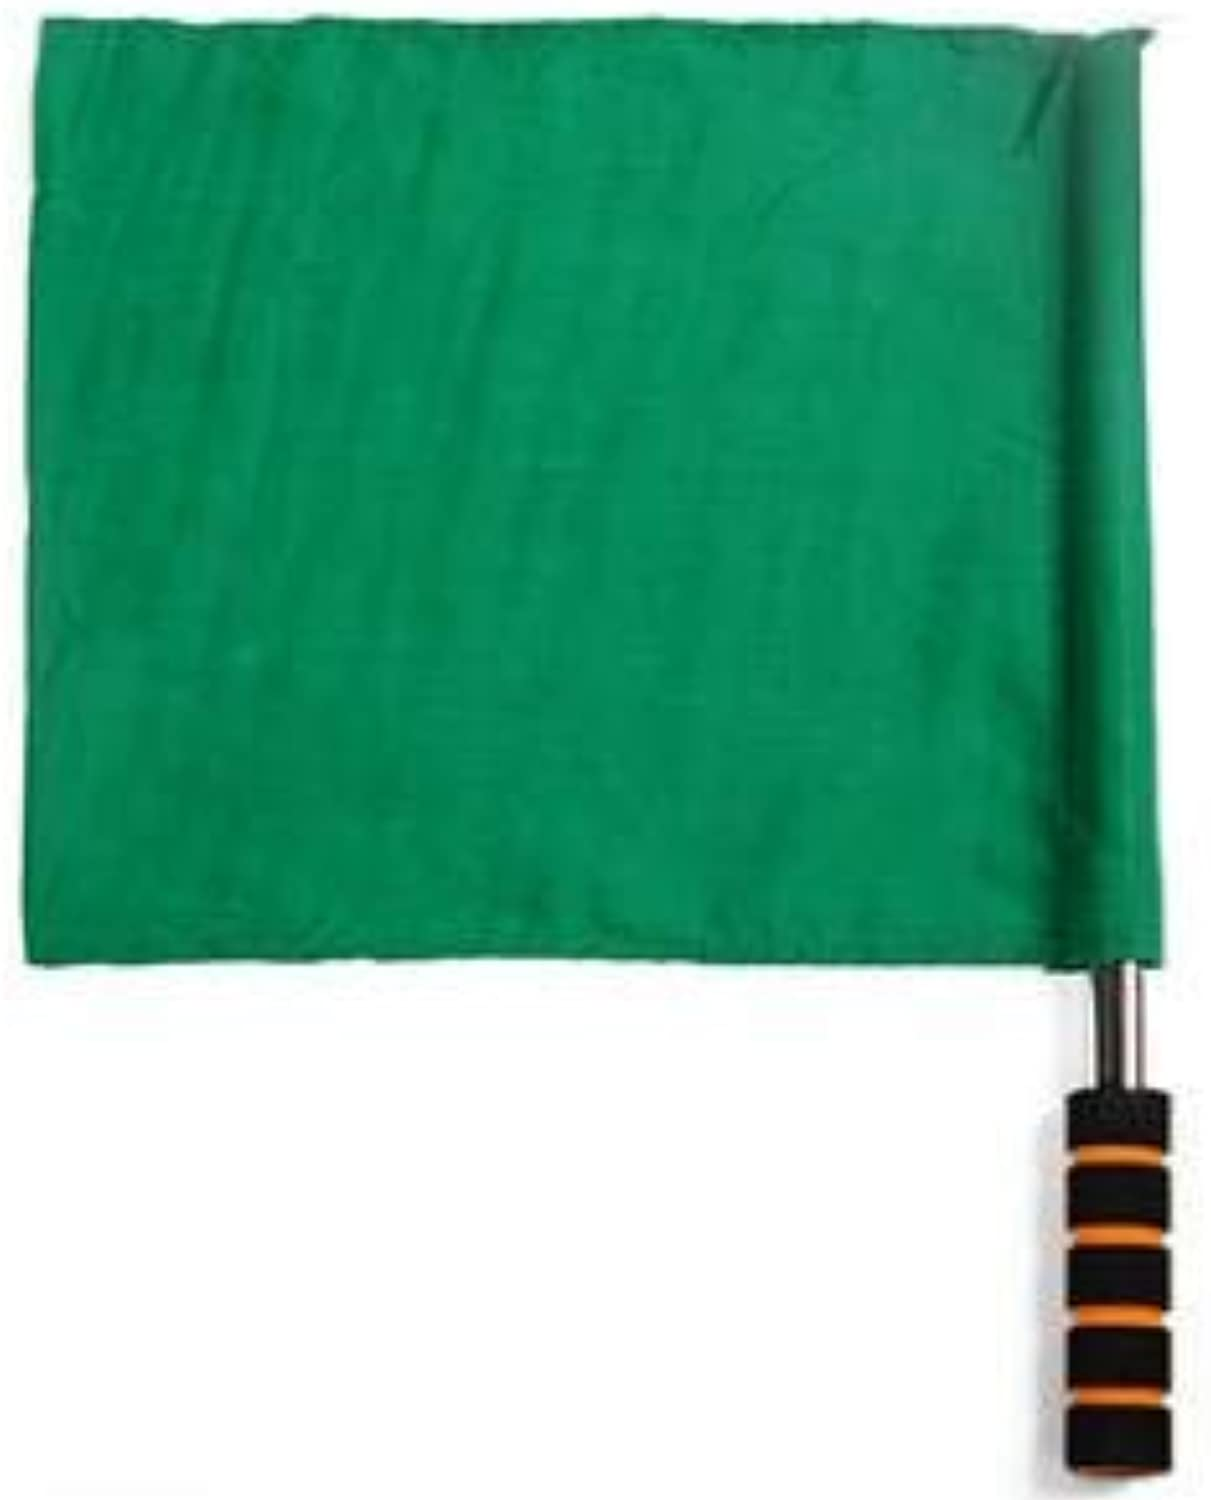 Free Shipping Retail 1piece Four colors for Choose Sports Plain Champion Flag Training Referee Soccer Flags Command Flag   Green